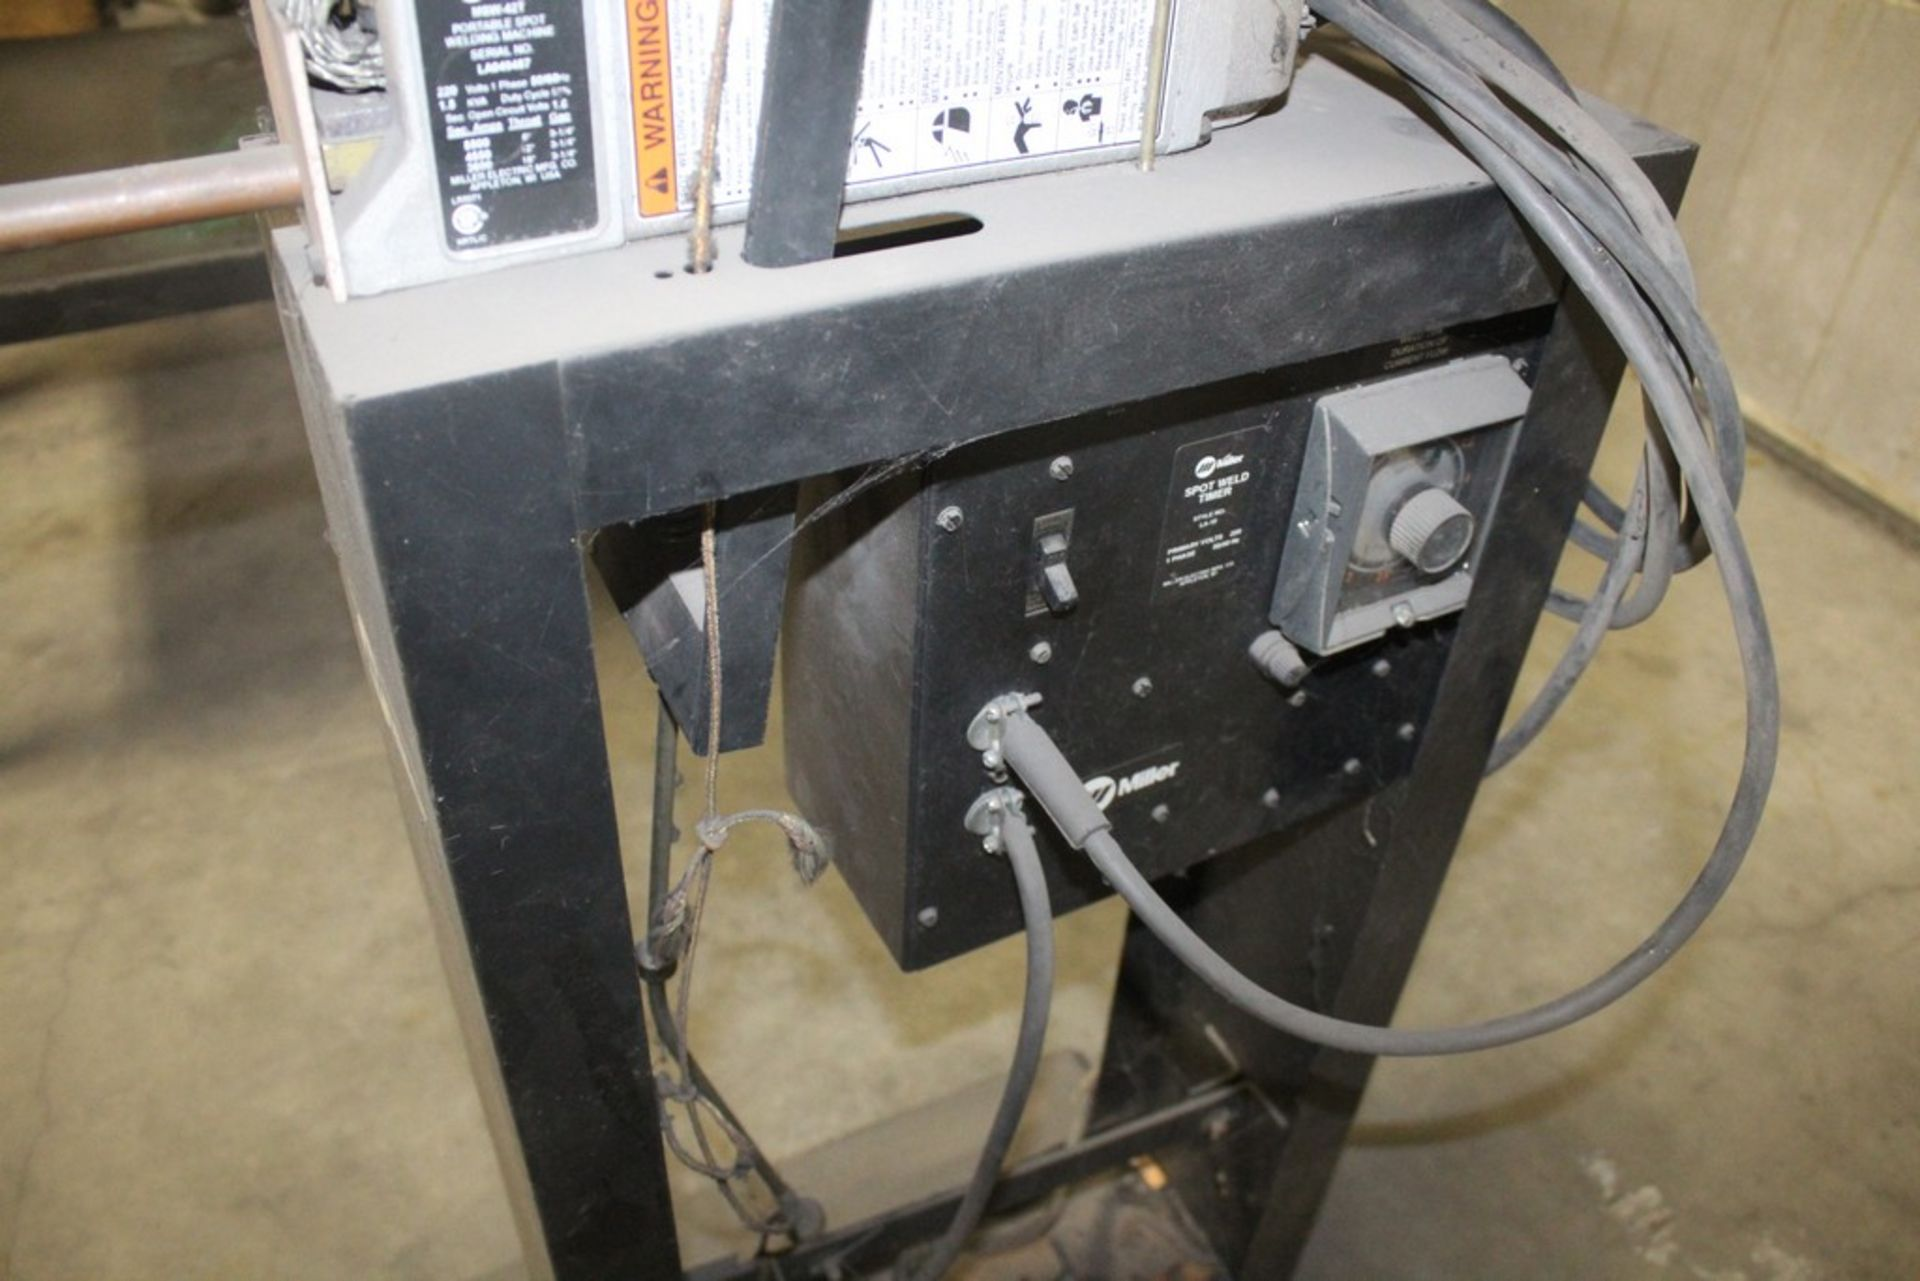 Miller Model MSW-42T Single Phase 1.5 KVA Spot Welder, Serial Number: LA049487 - Image 5 of 5